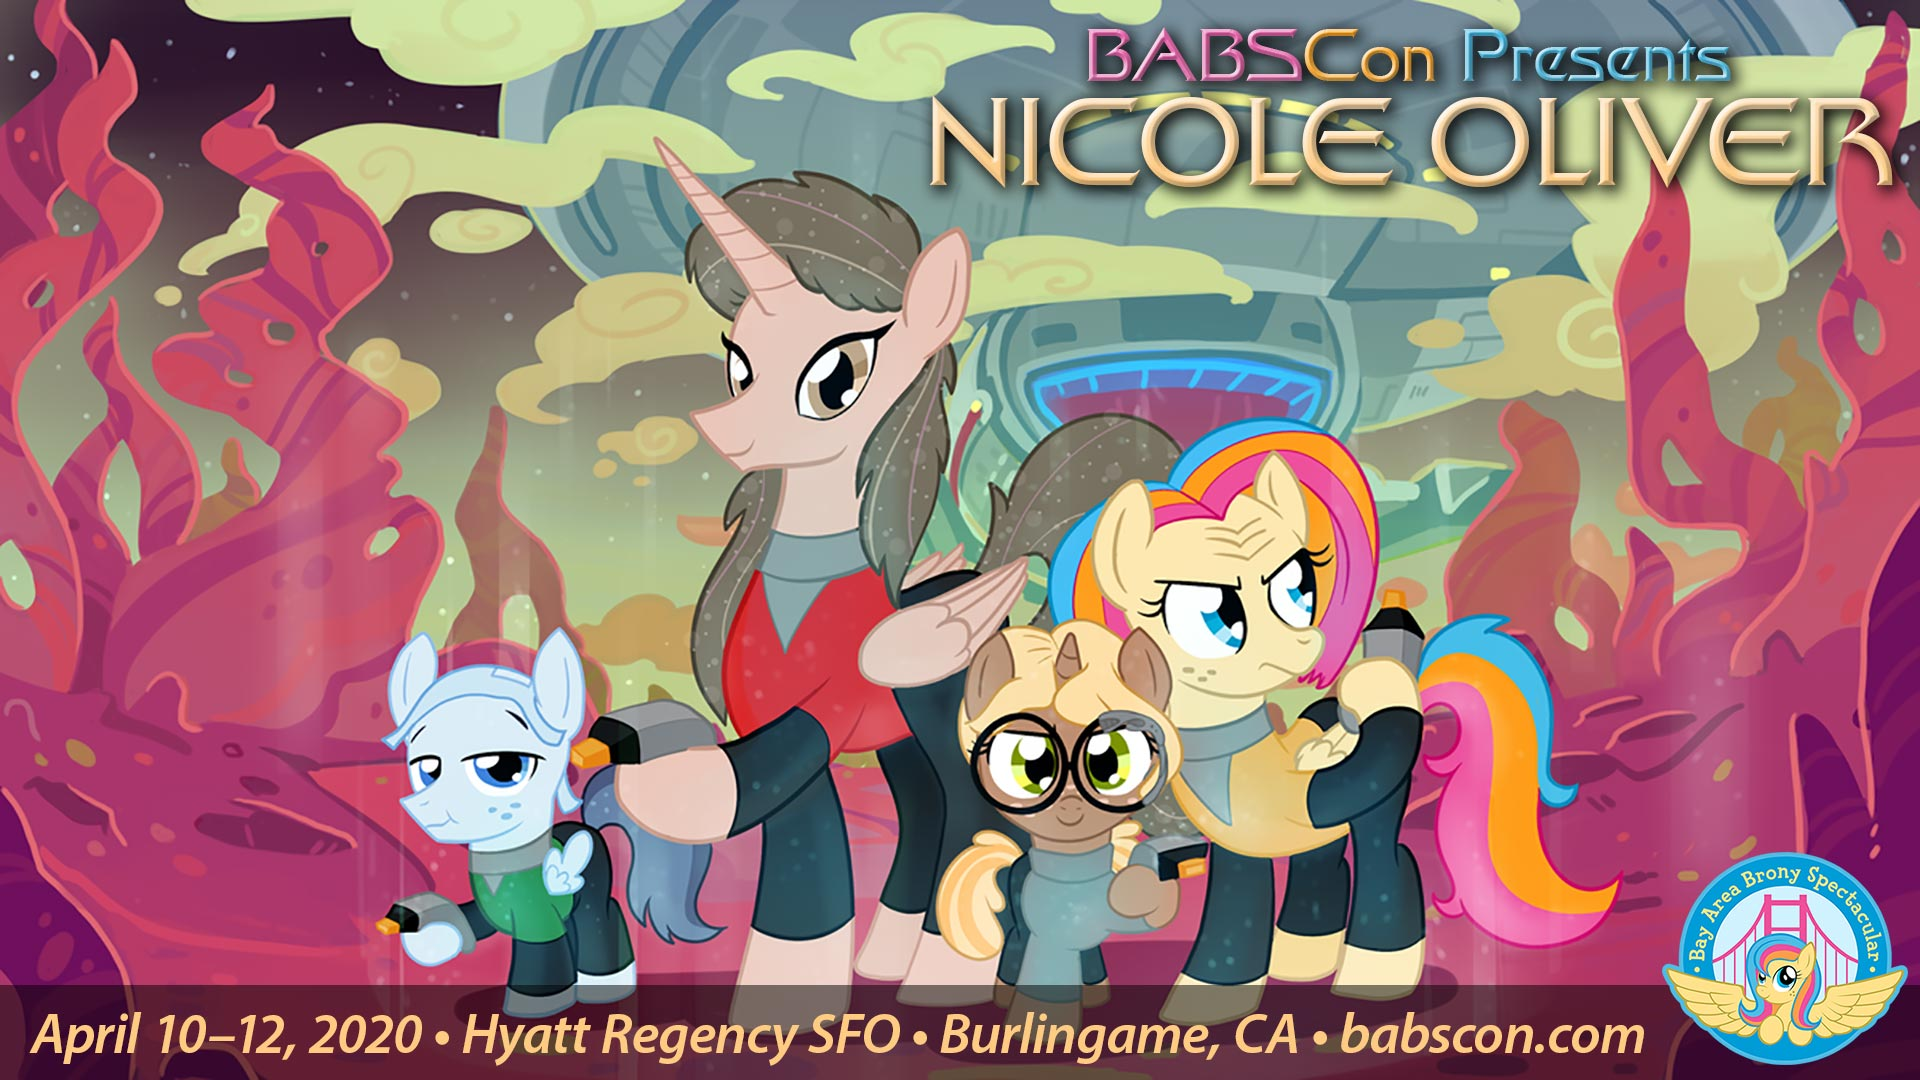 BABSCon 2020 Gets Celestial with Nicole Oliver!